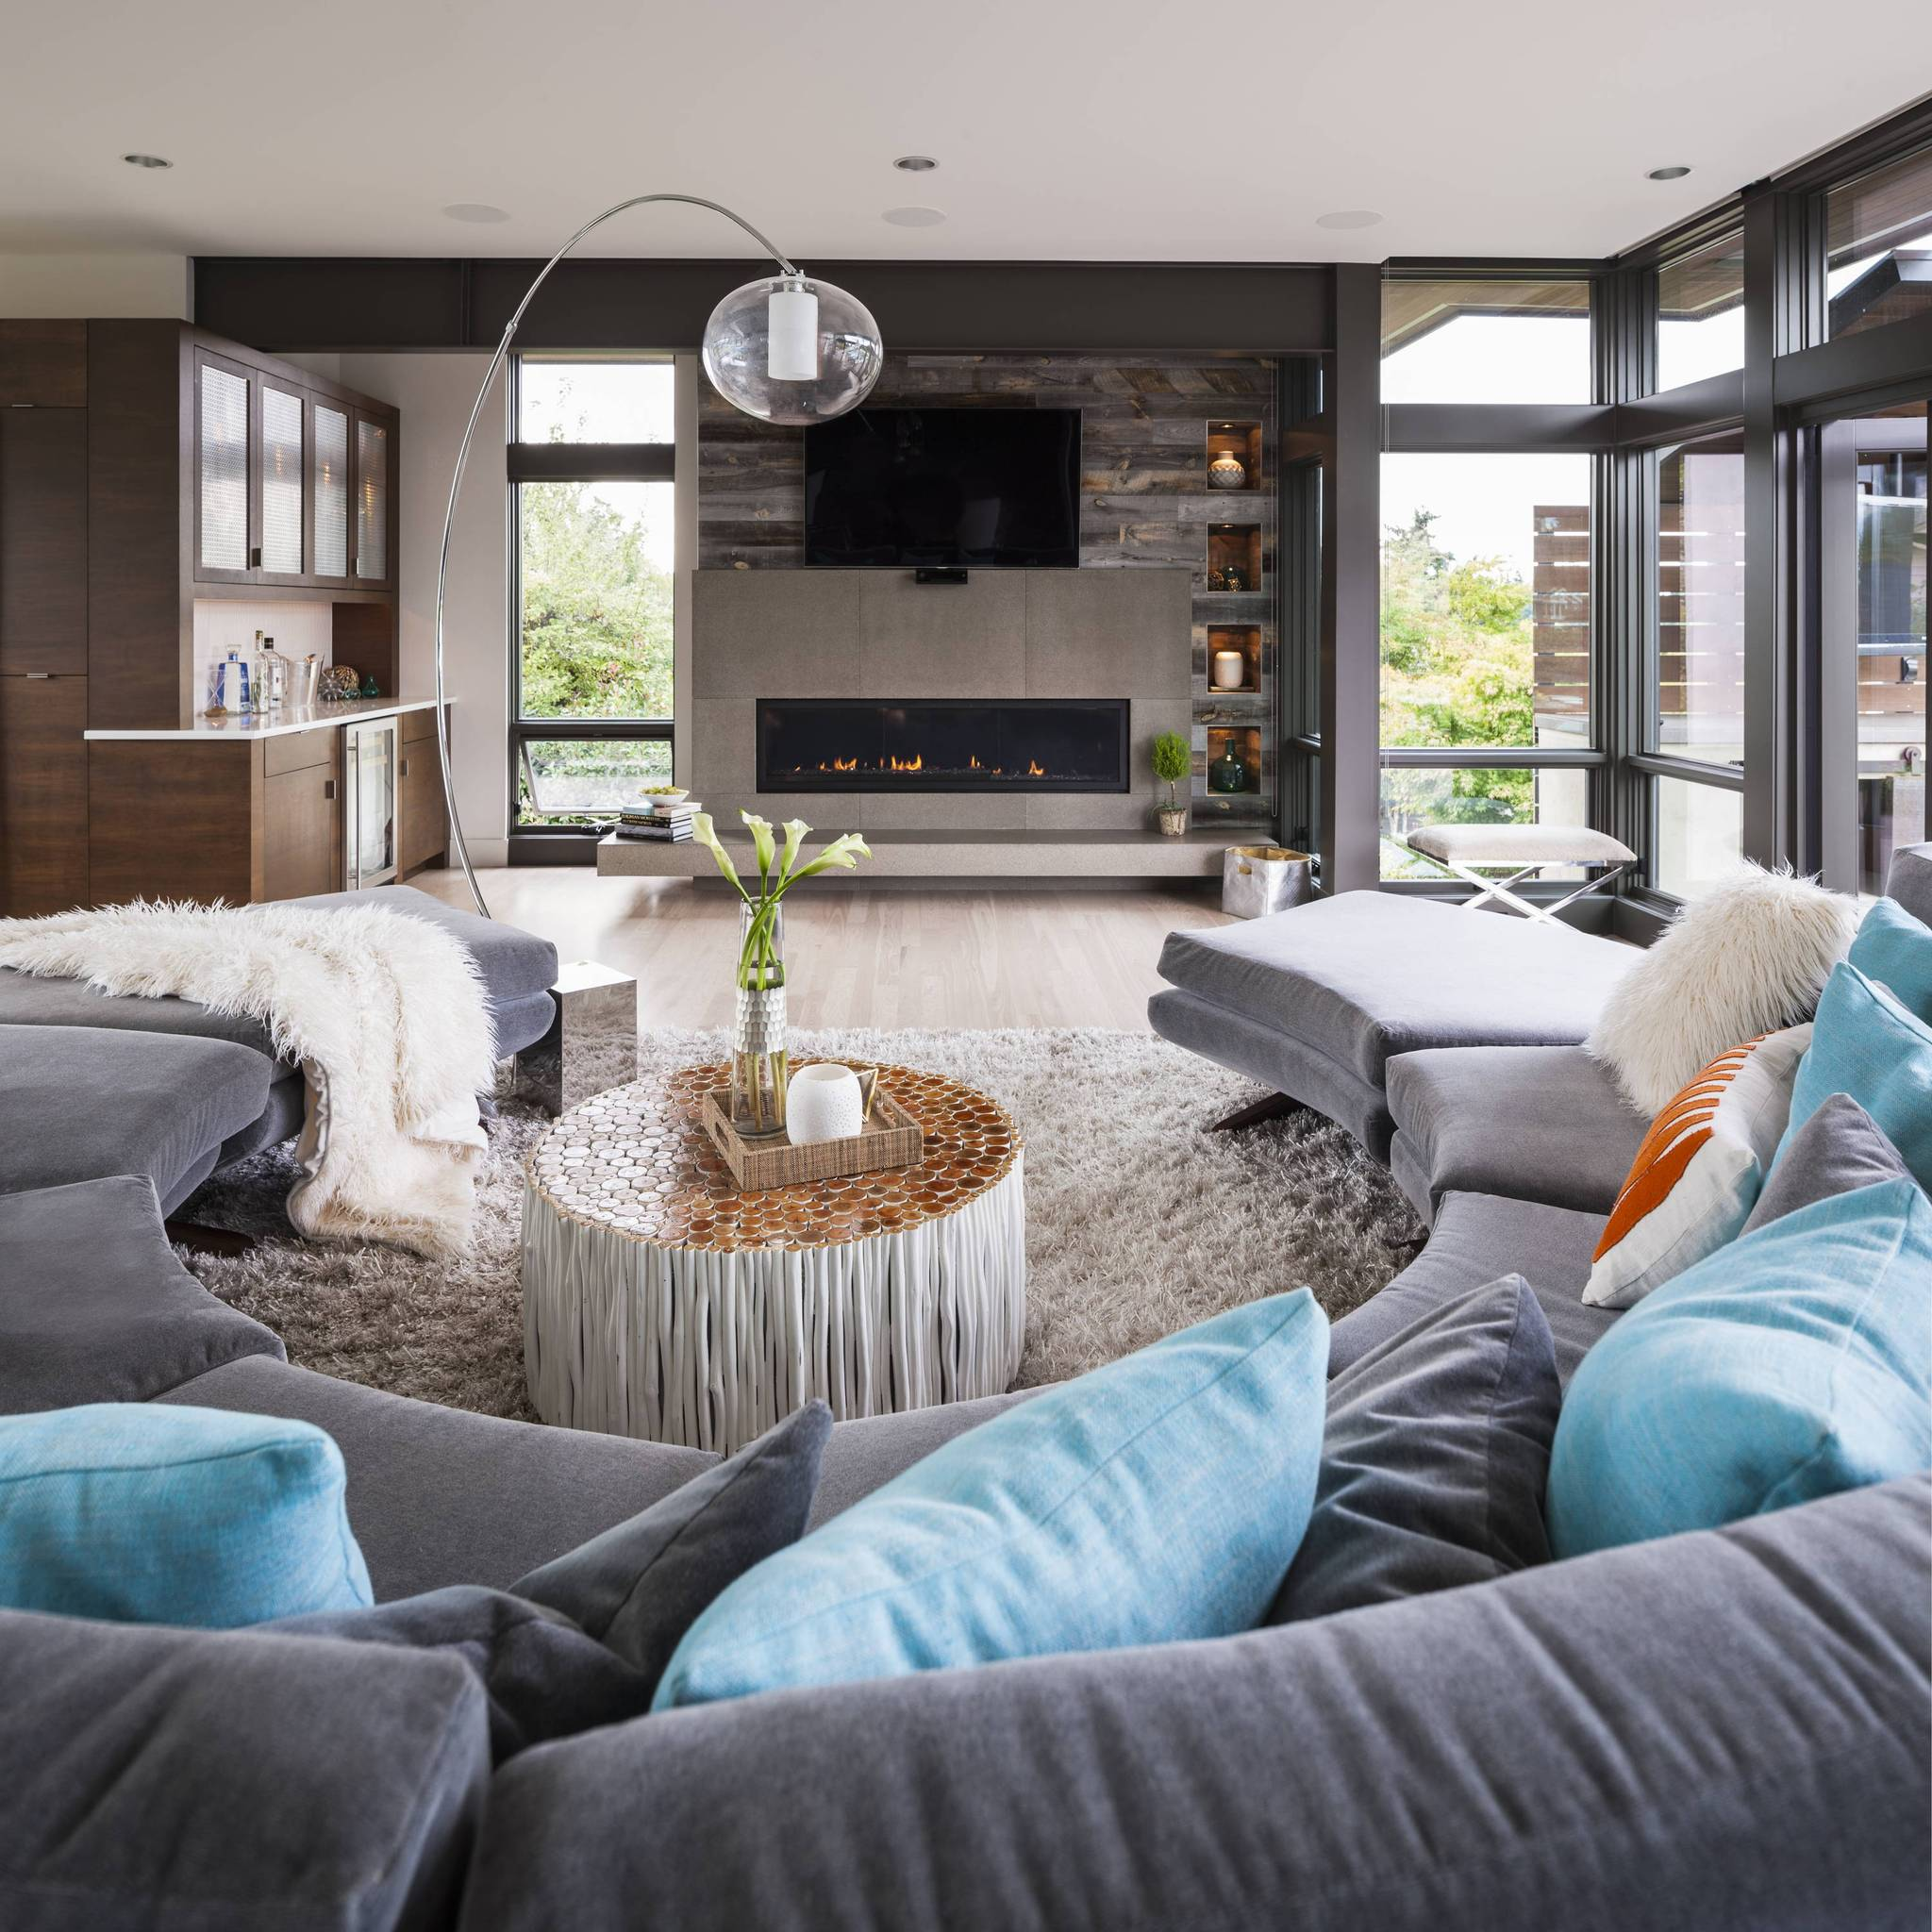 Amazing modern living room design featuring open concept and reclaimed wood feature wall made with peel and stick wood planks.